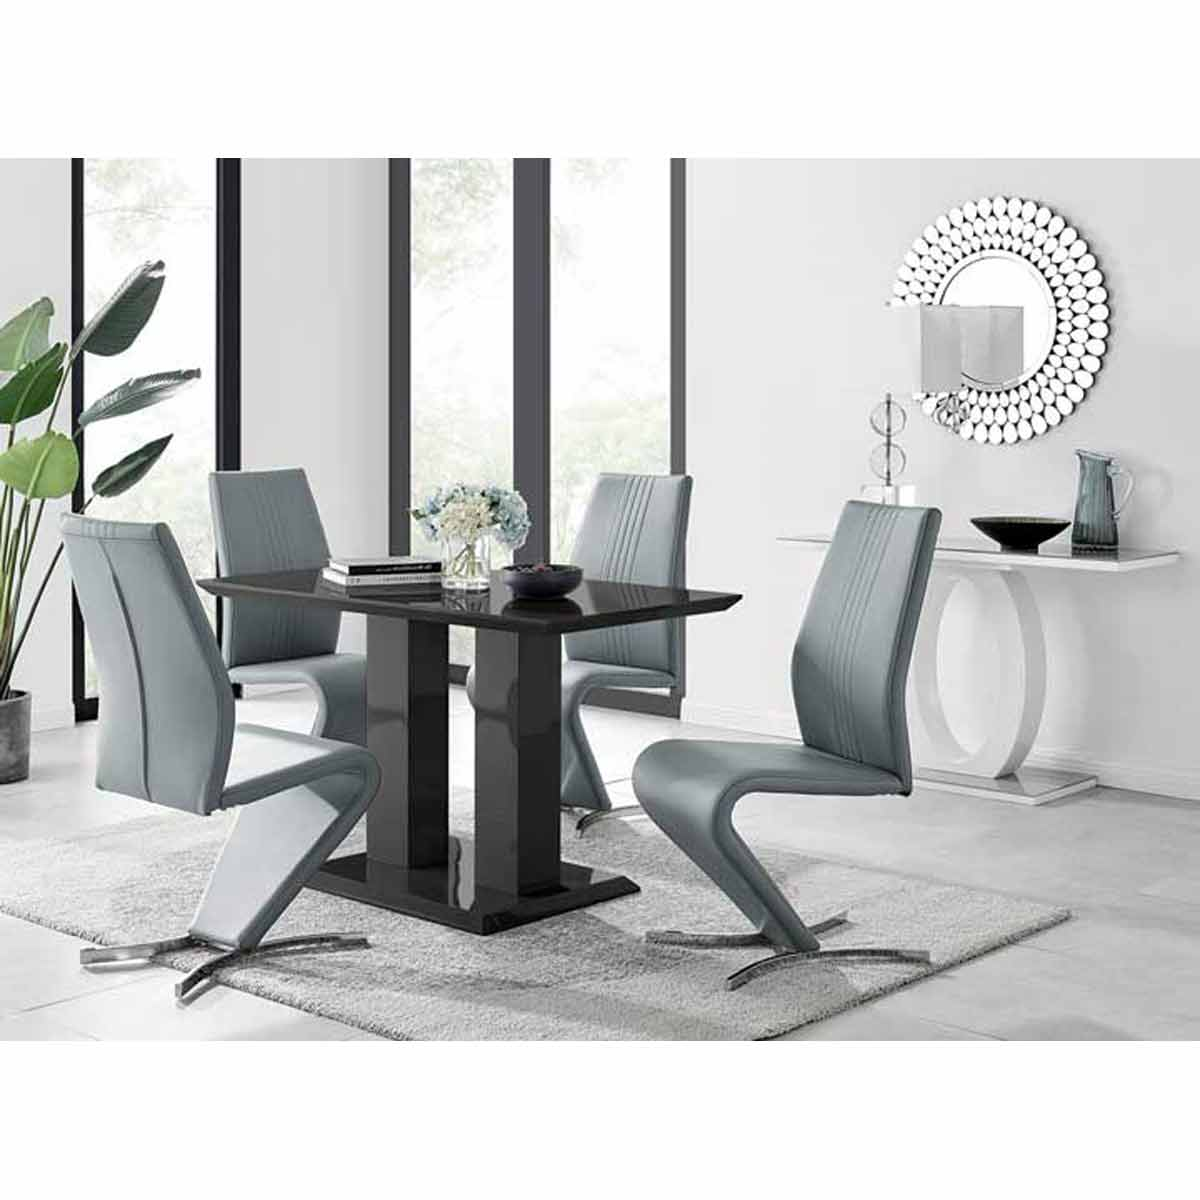 Furniture Box Imperia 4 Modern Black High Gloss Dining Table And 4 Elephant Grey Luxury Willow Chairs Set